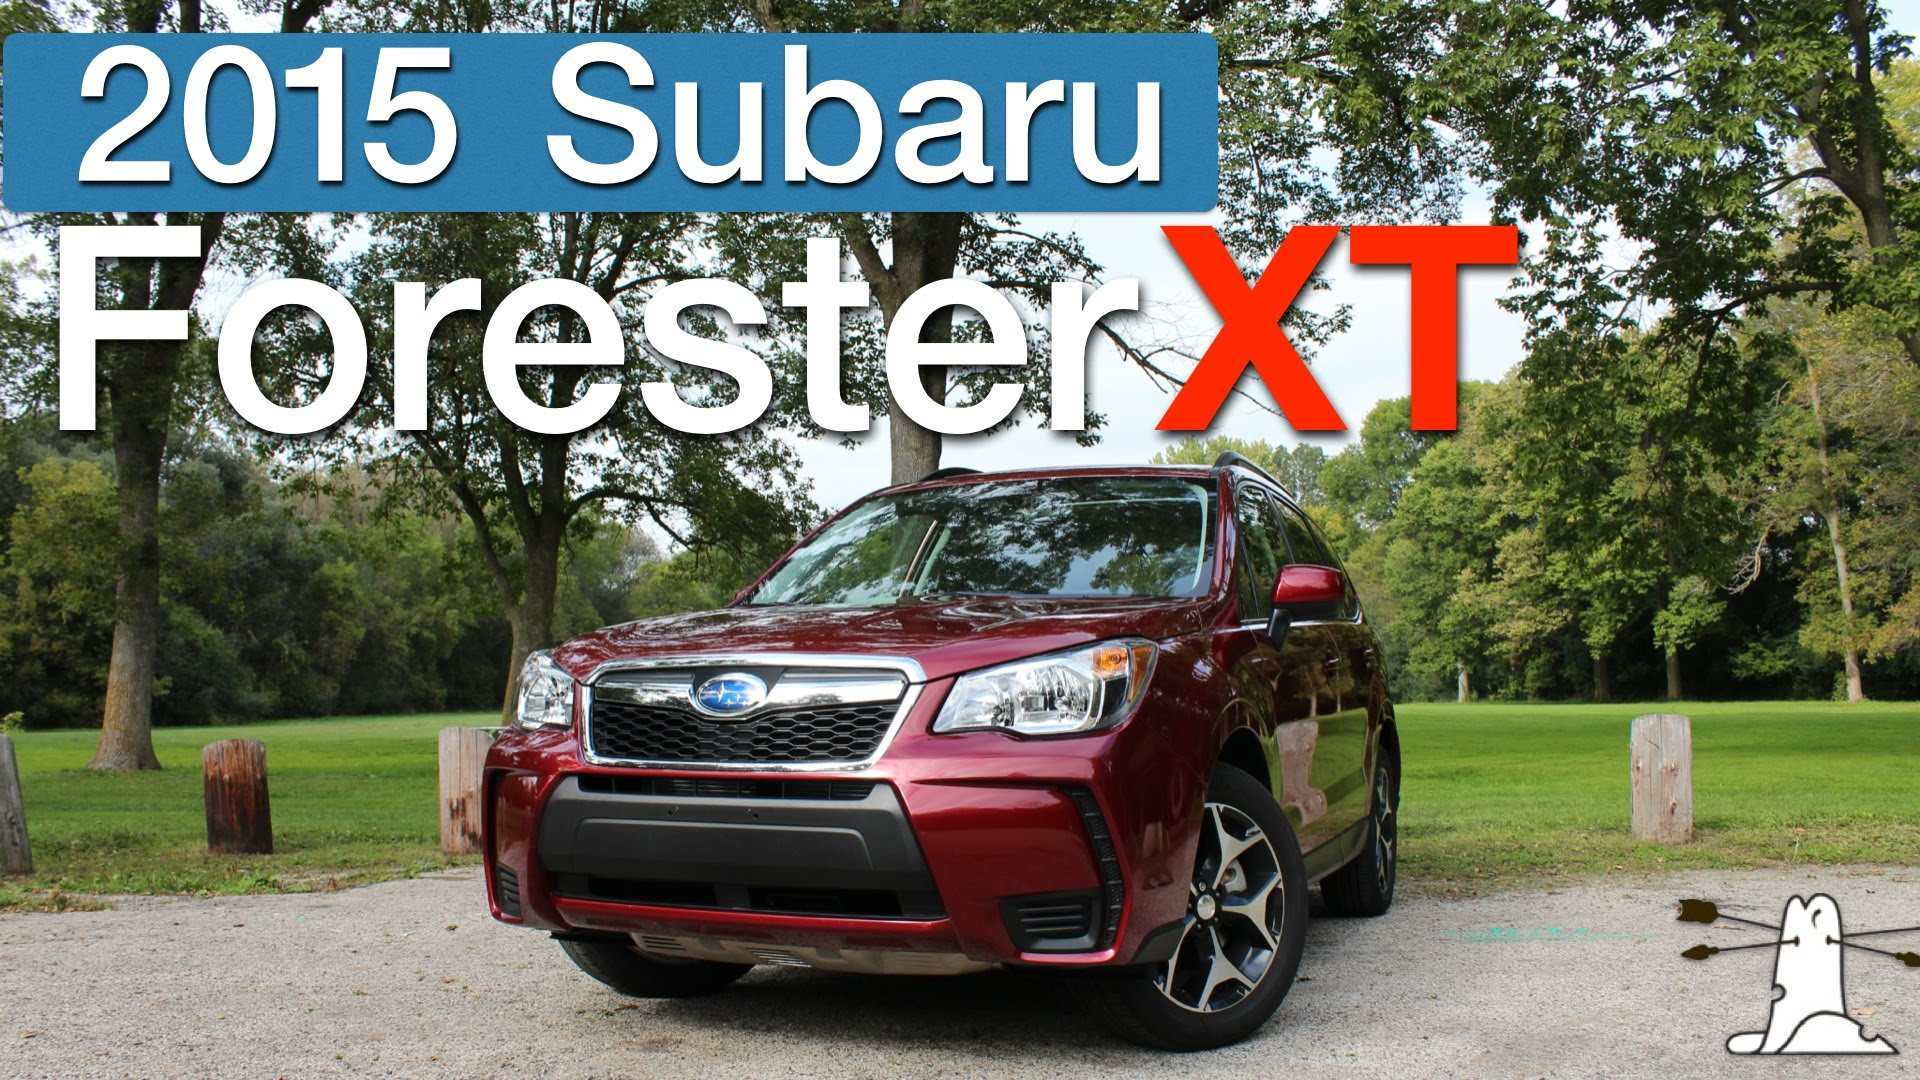 2015 Subaru Foresterxt Car Review Video